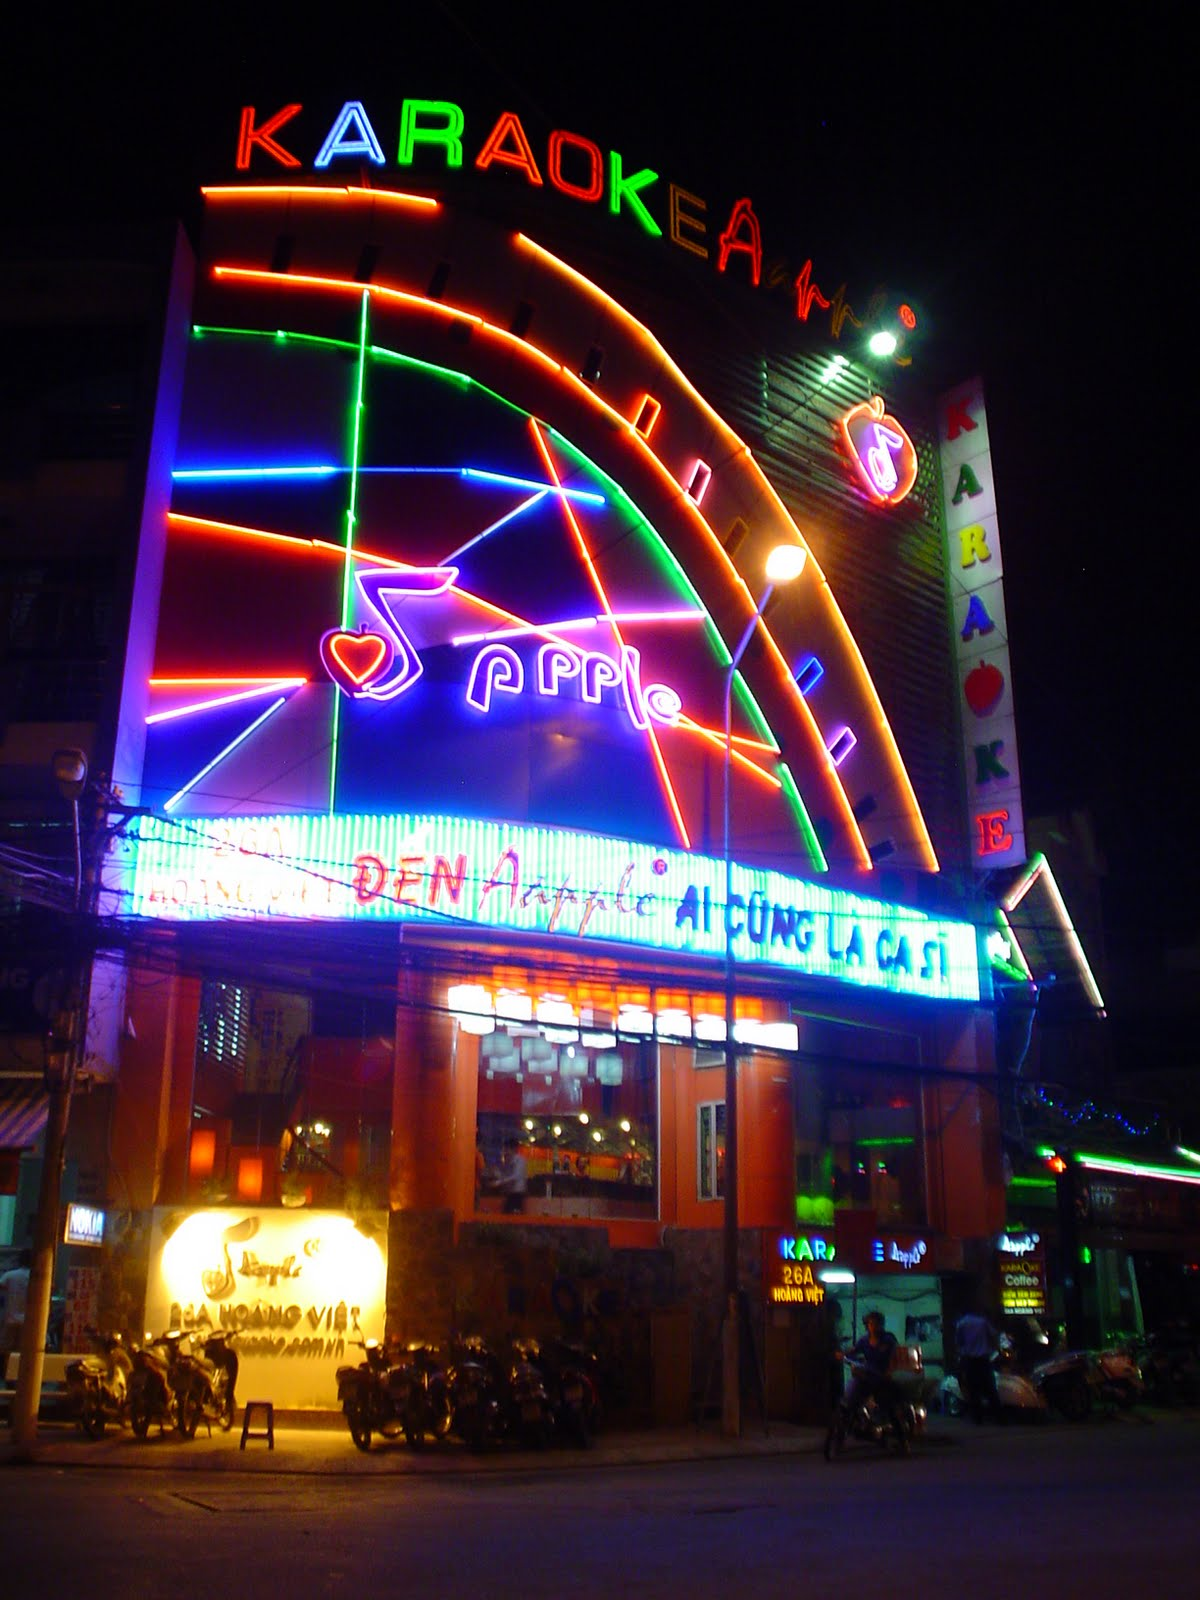 image Karaoke bar in vietnam without sound low res